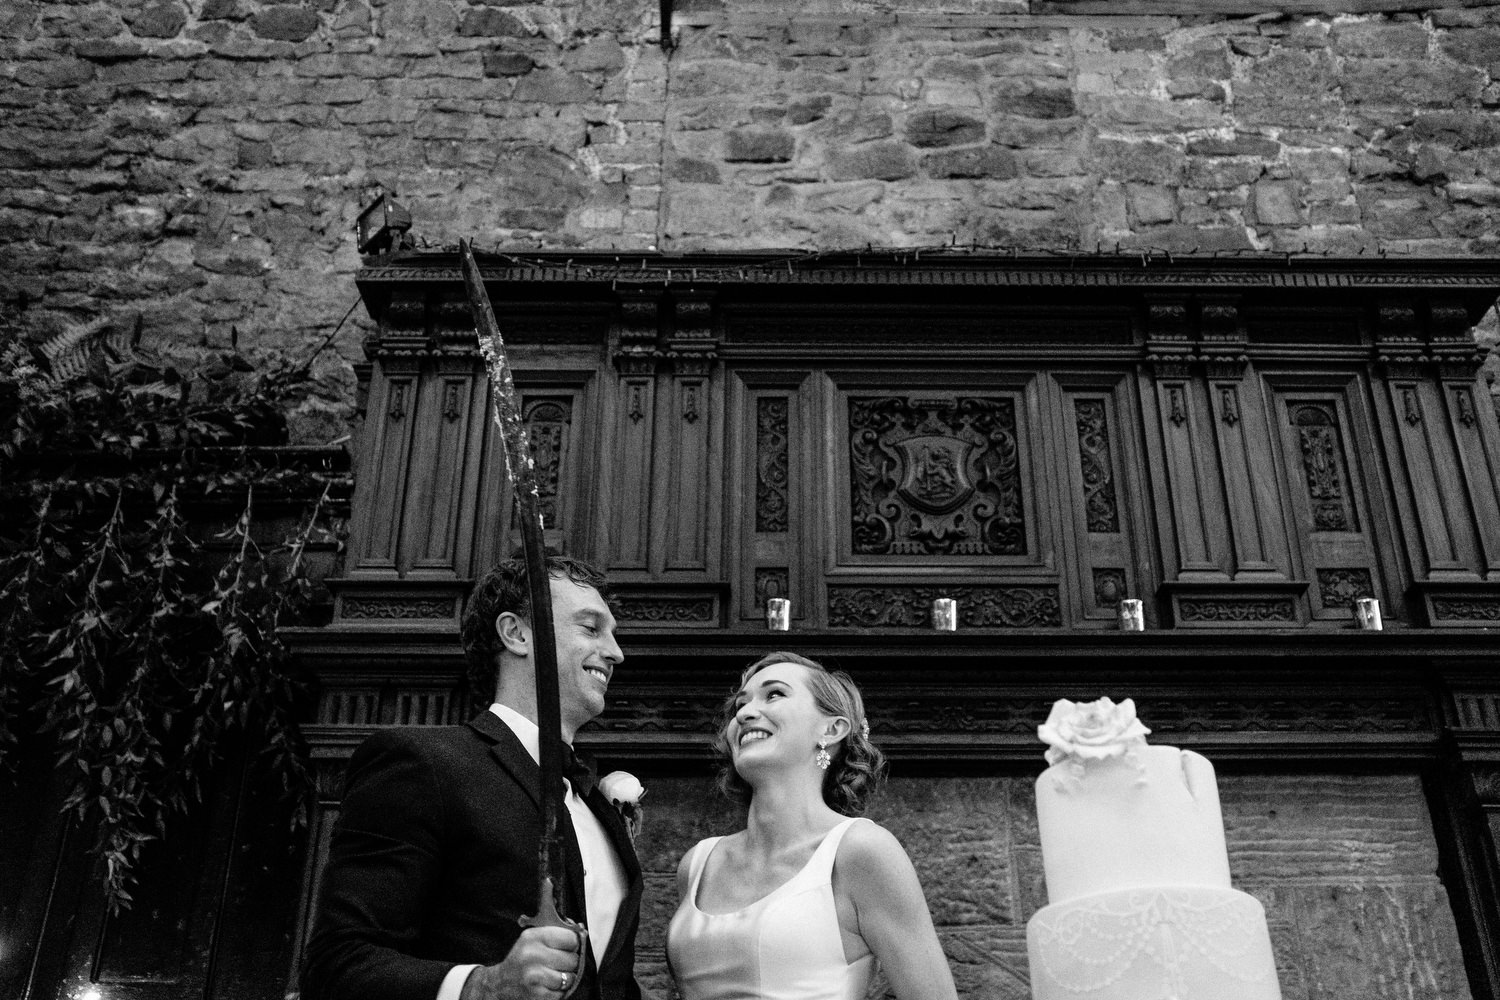 000000000000000000000190_bride_style_vintage_photography_david_mcclelland_ireland_castle_hollywood_kinnity_wedding_photographer_fujifilm